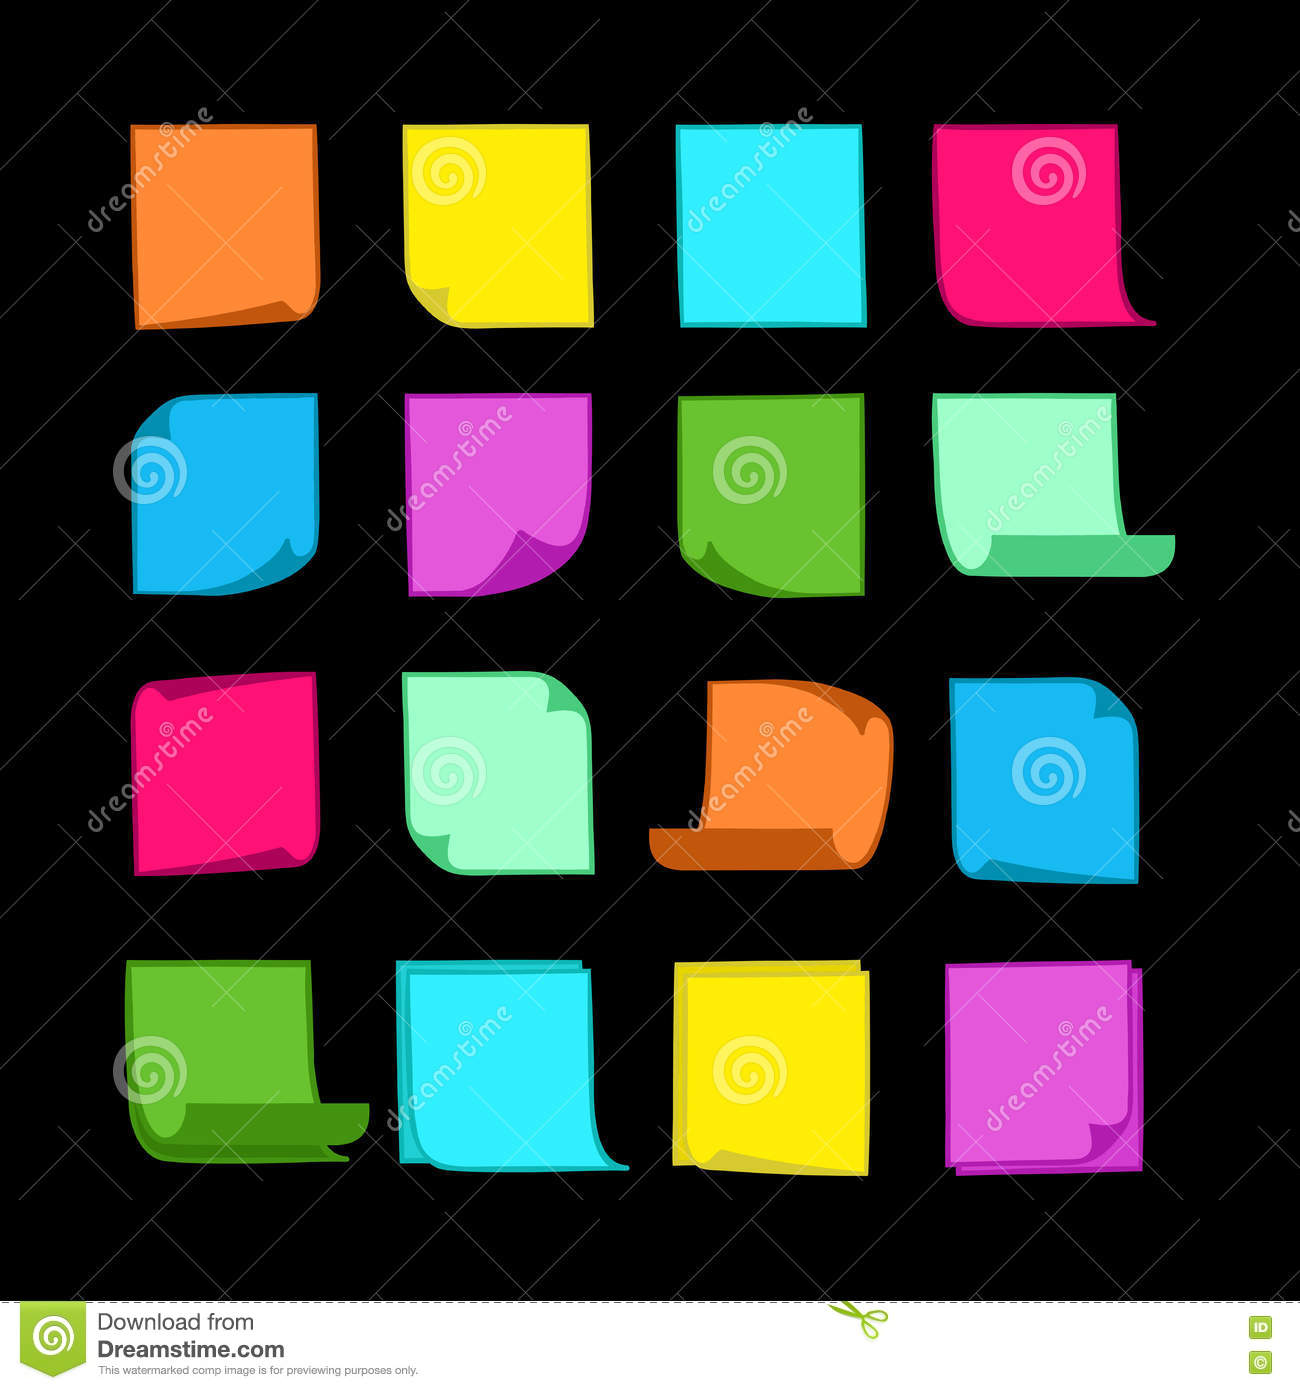 Free vector graphic sticky note note info paper free image on - Royalty Free Vector Sticky Notes Collection 06 Stock Vector